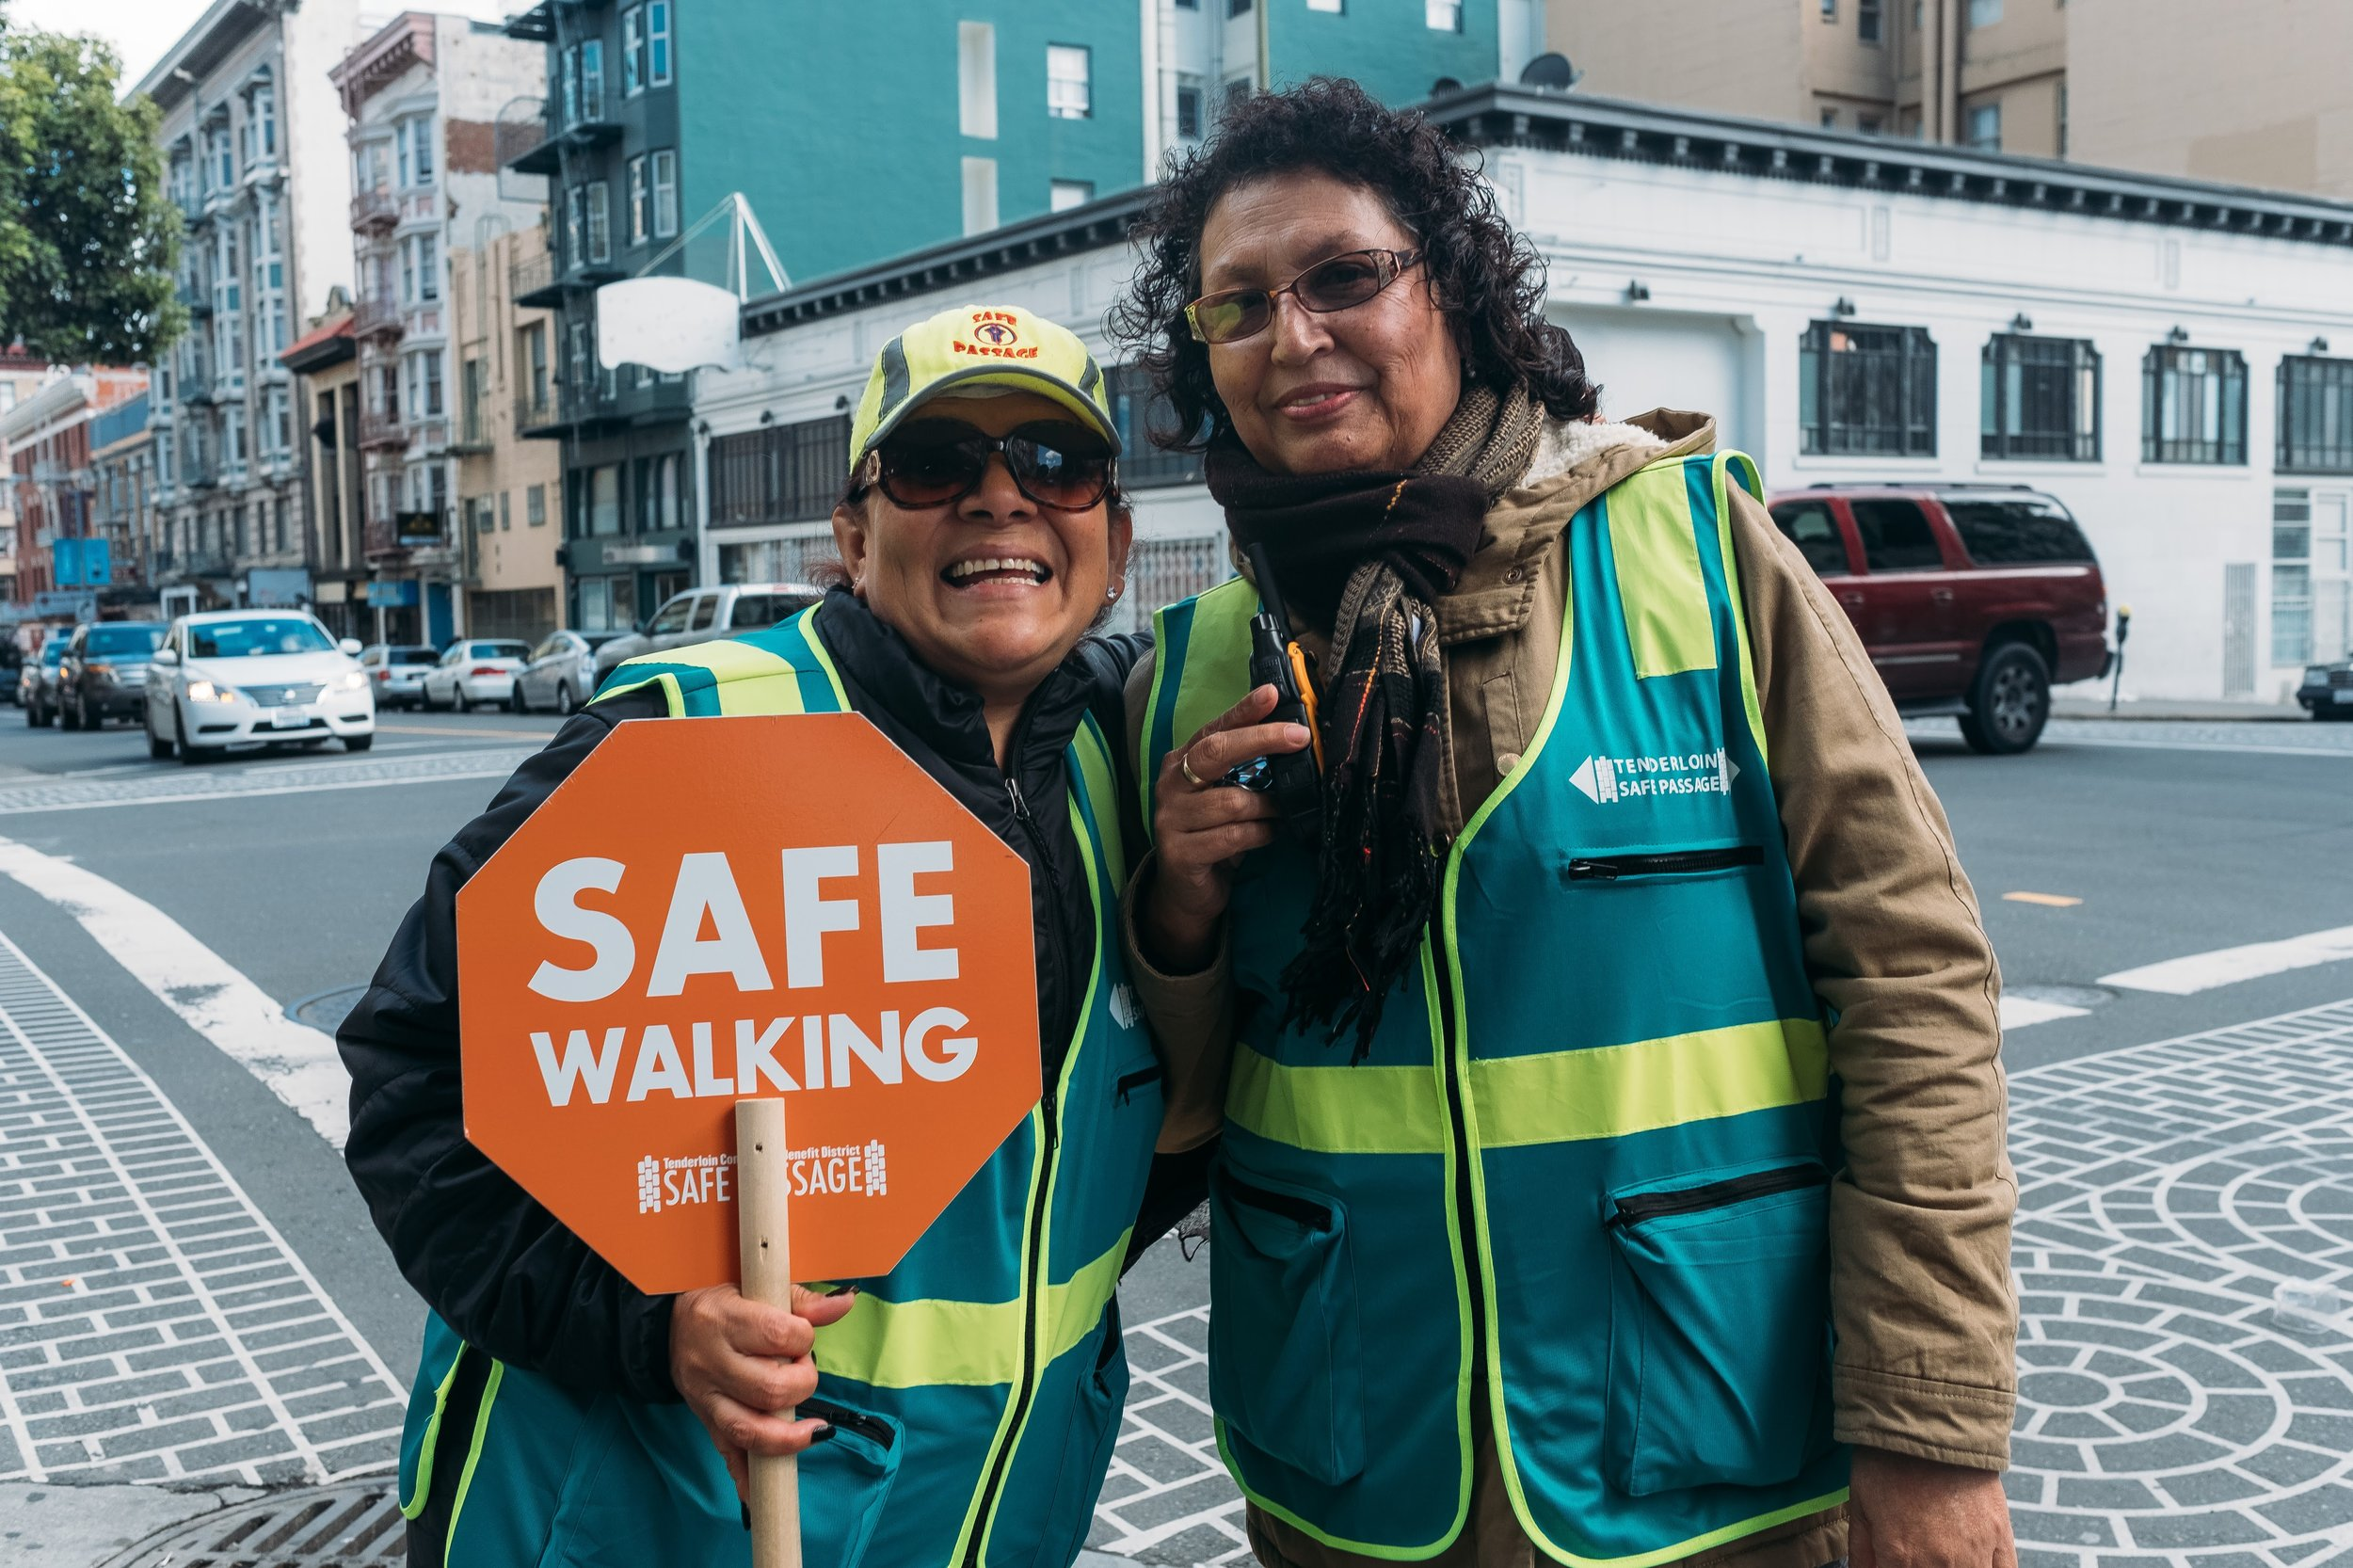 Safe Passage Senior - Safe Passage Senior works to increase safety and perception of safety for seniors in the Tenderloin.READ MORE